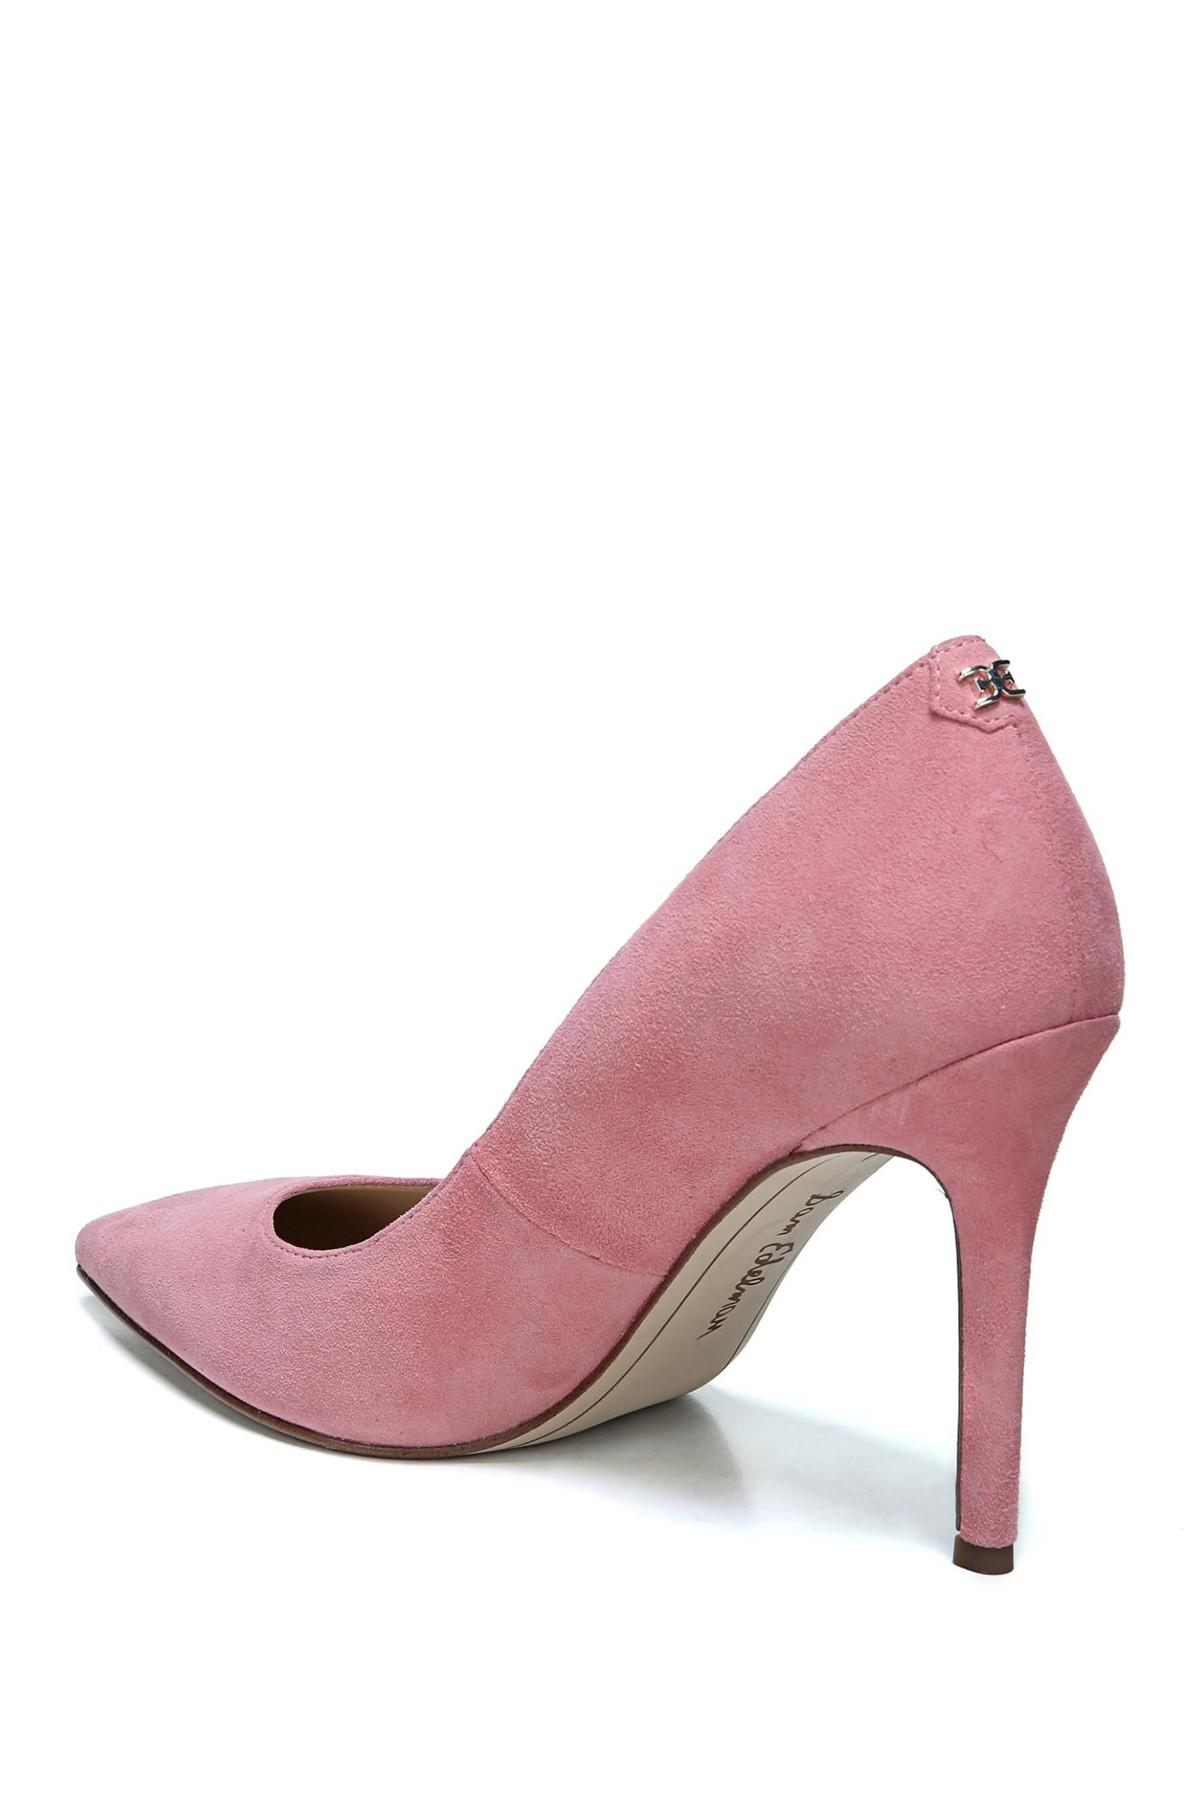 a0ab9dc76 Lyst - Sam Edelman Hazel Pointy Toe Pump (women) in Pink